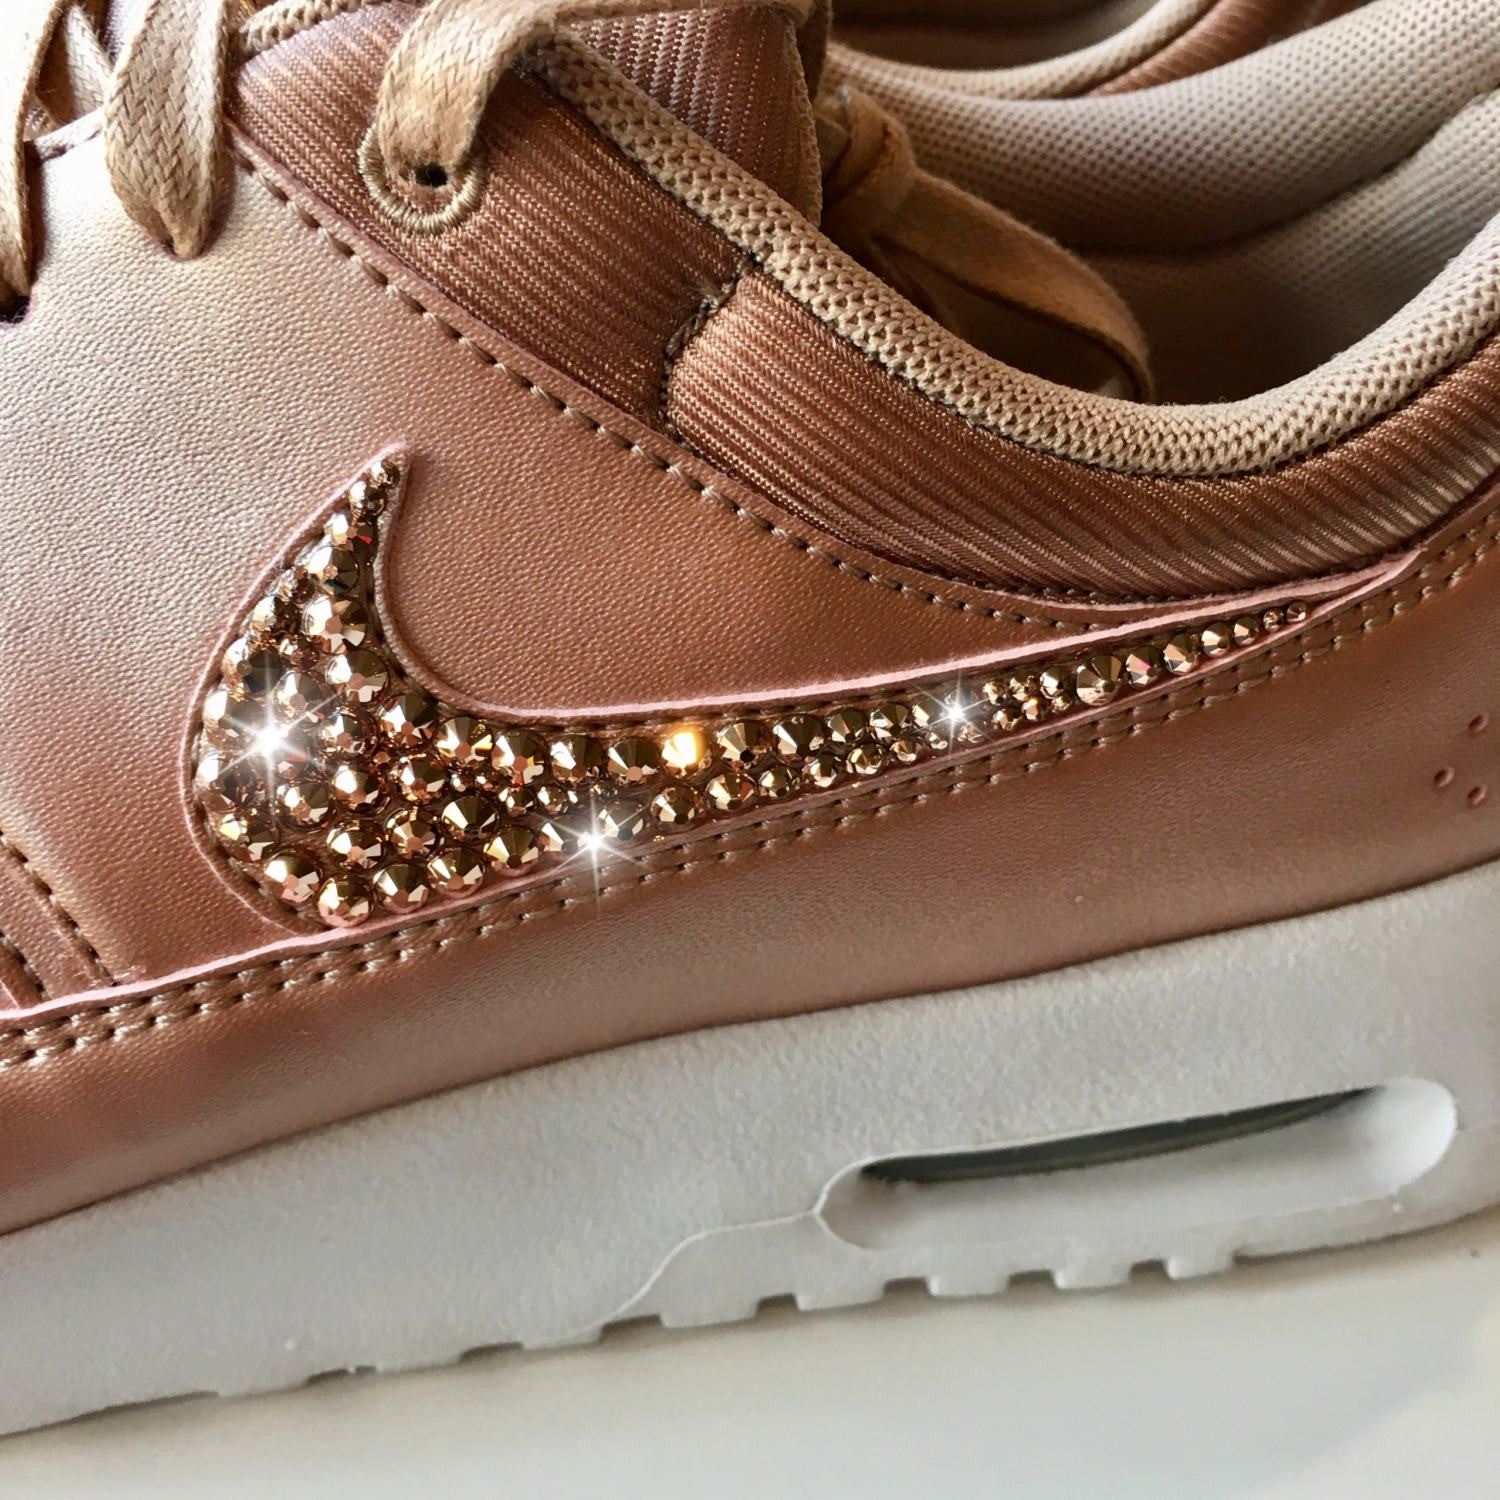 the latest 301c0 fbc68 ... ROSE GOLD Bling Nike Air Max Thea Metallic SE Shoes with Swarovski  Crystals   Bedazzled with ...